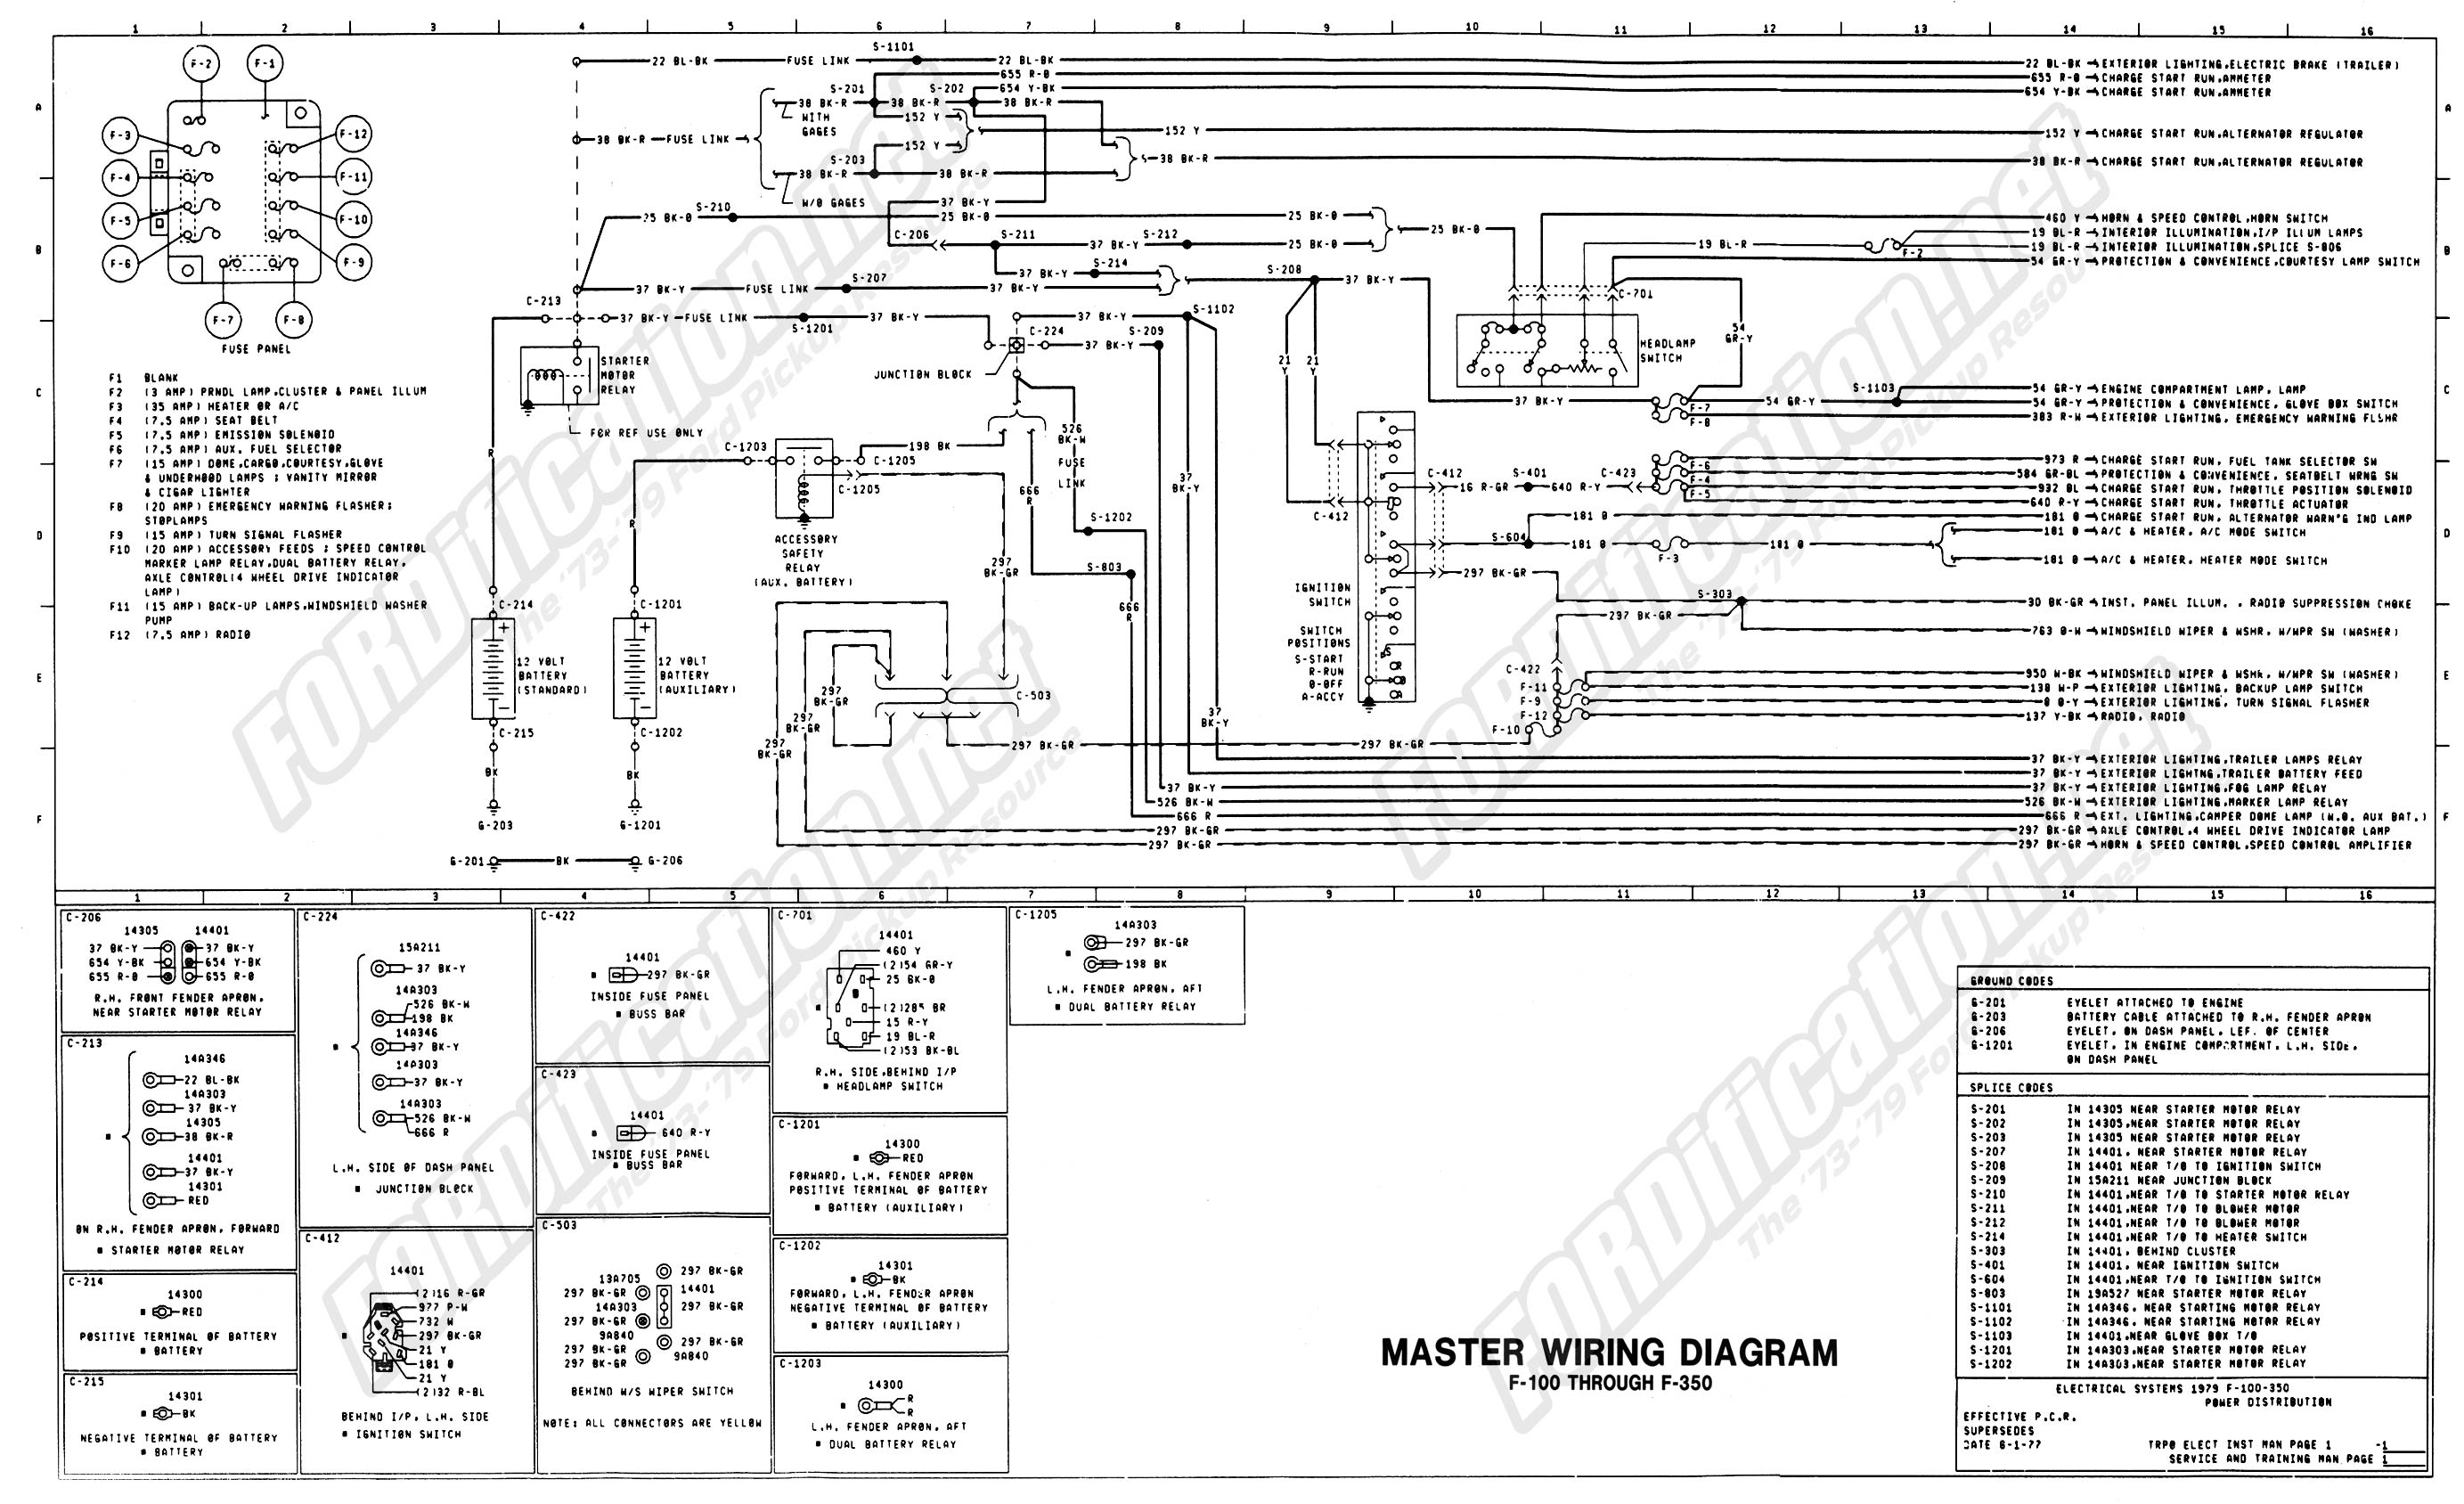 f250 wiring diagram Download-1973 1979 ford Truck Wiring Diagrams & Schematics fordification 1991 E4od Od button Wiring ford 5-b